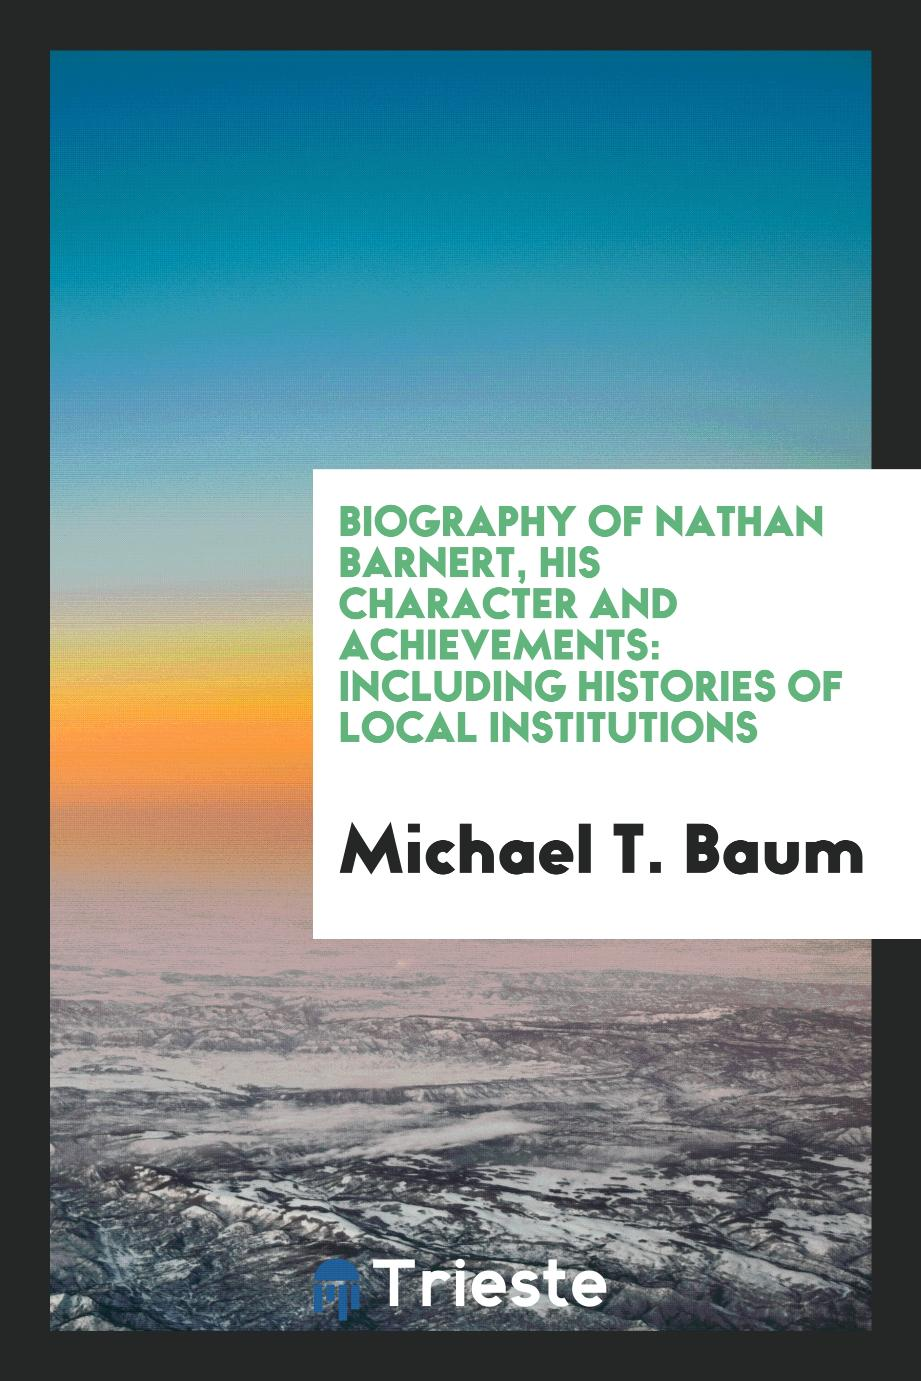 Biography of Nathan Barnert, His Character and Achievements: Including Histories of Local Institutions